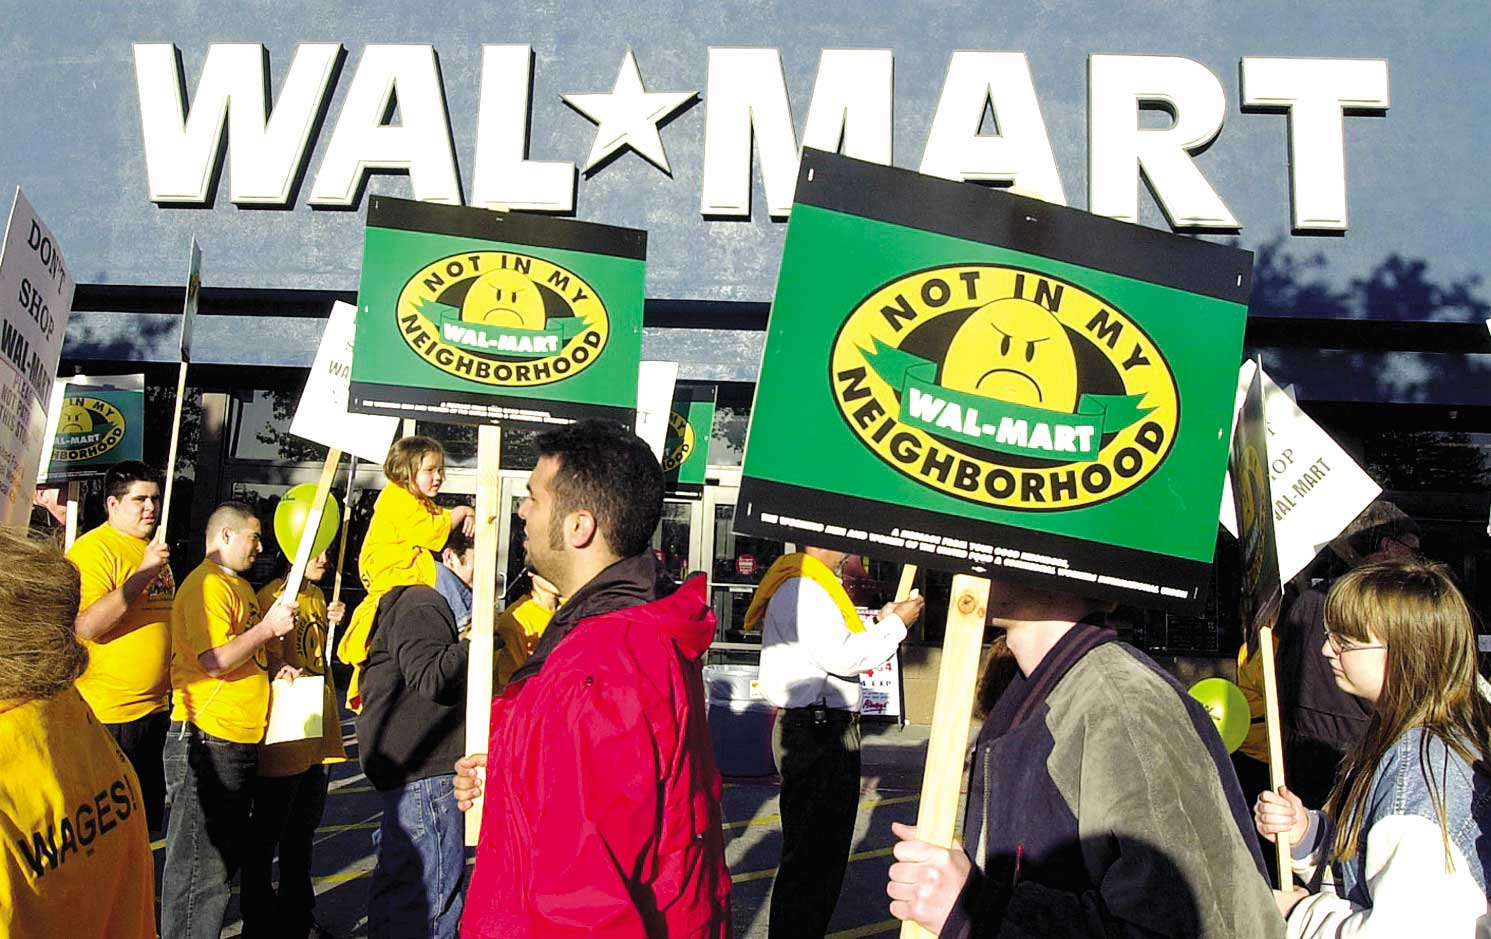 essays on wal mart good or bad When i first started looking into wal-mart as a reporter several years ago,  gosh,  we didn't know that we had a really bad supplier in china that abused its workers   by contrast, costco's suppliers were much, much better.